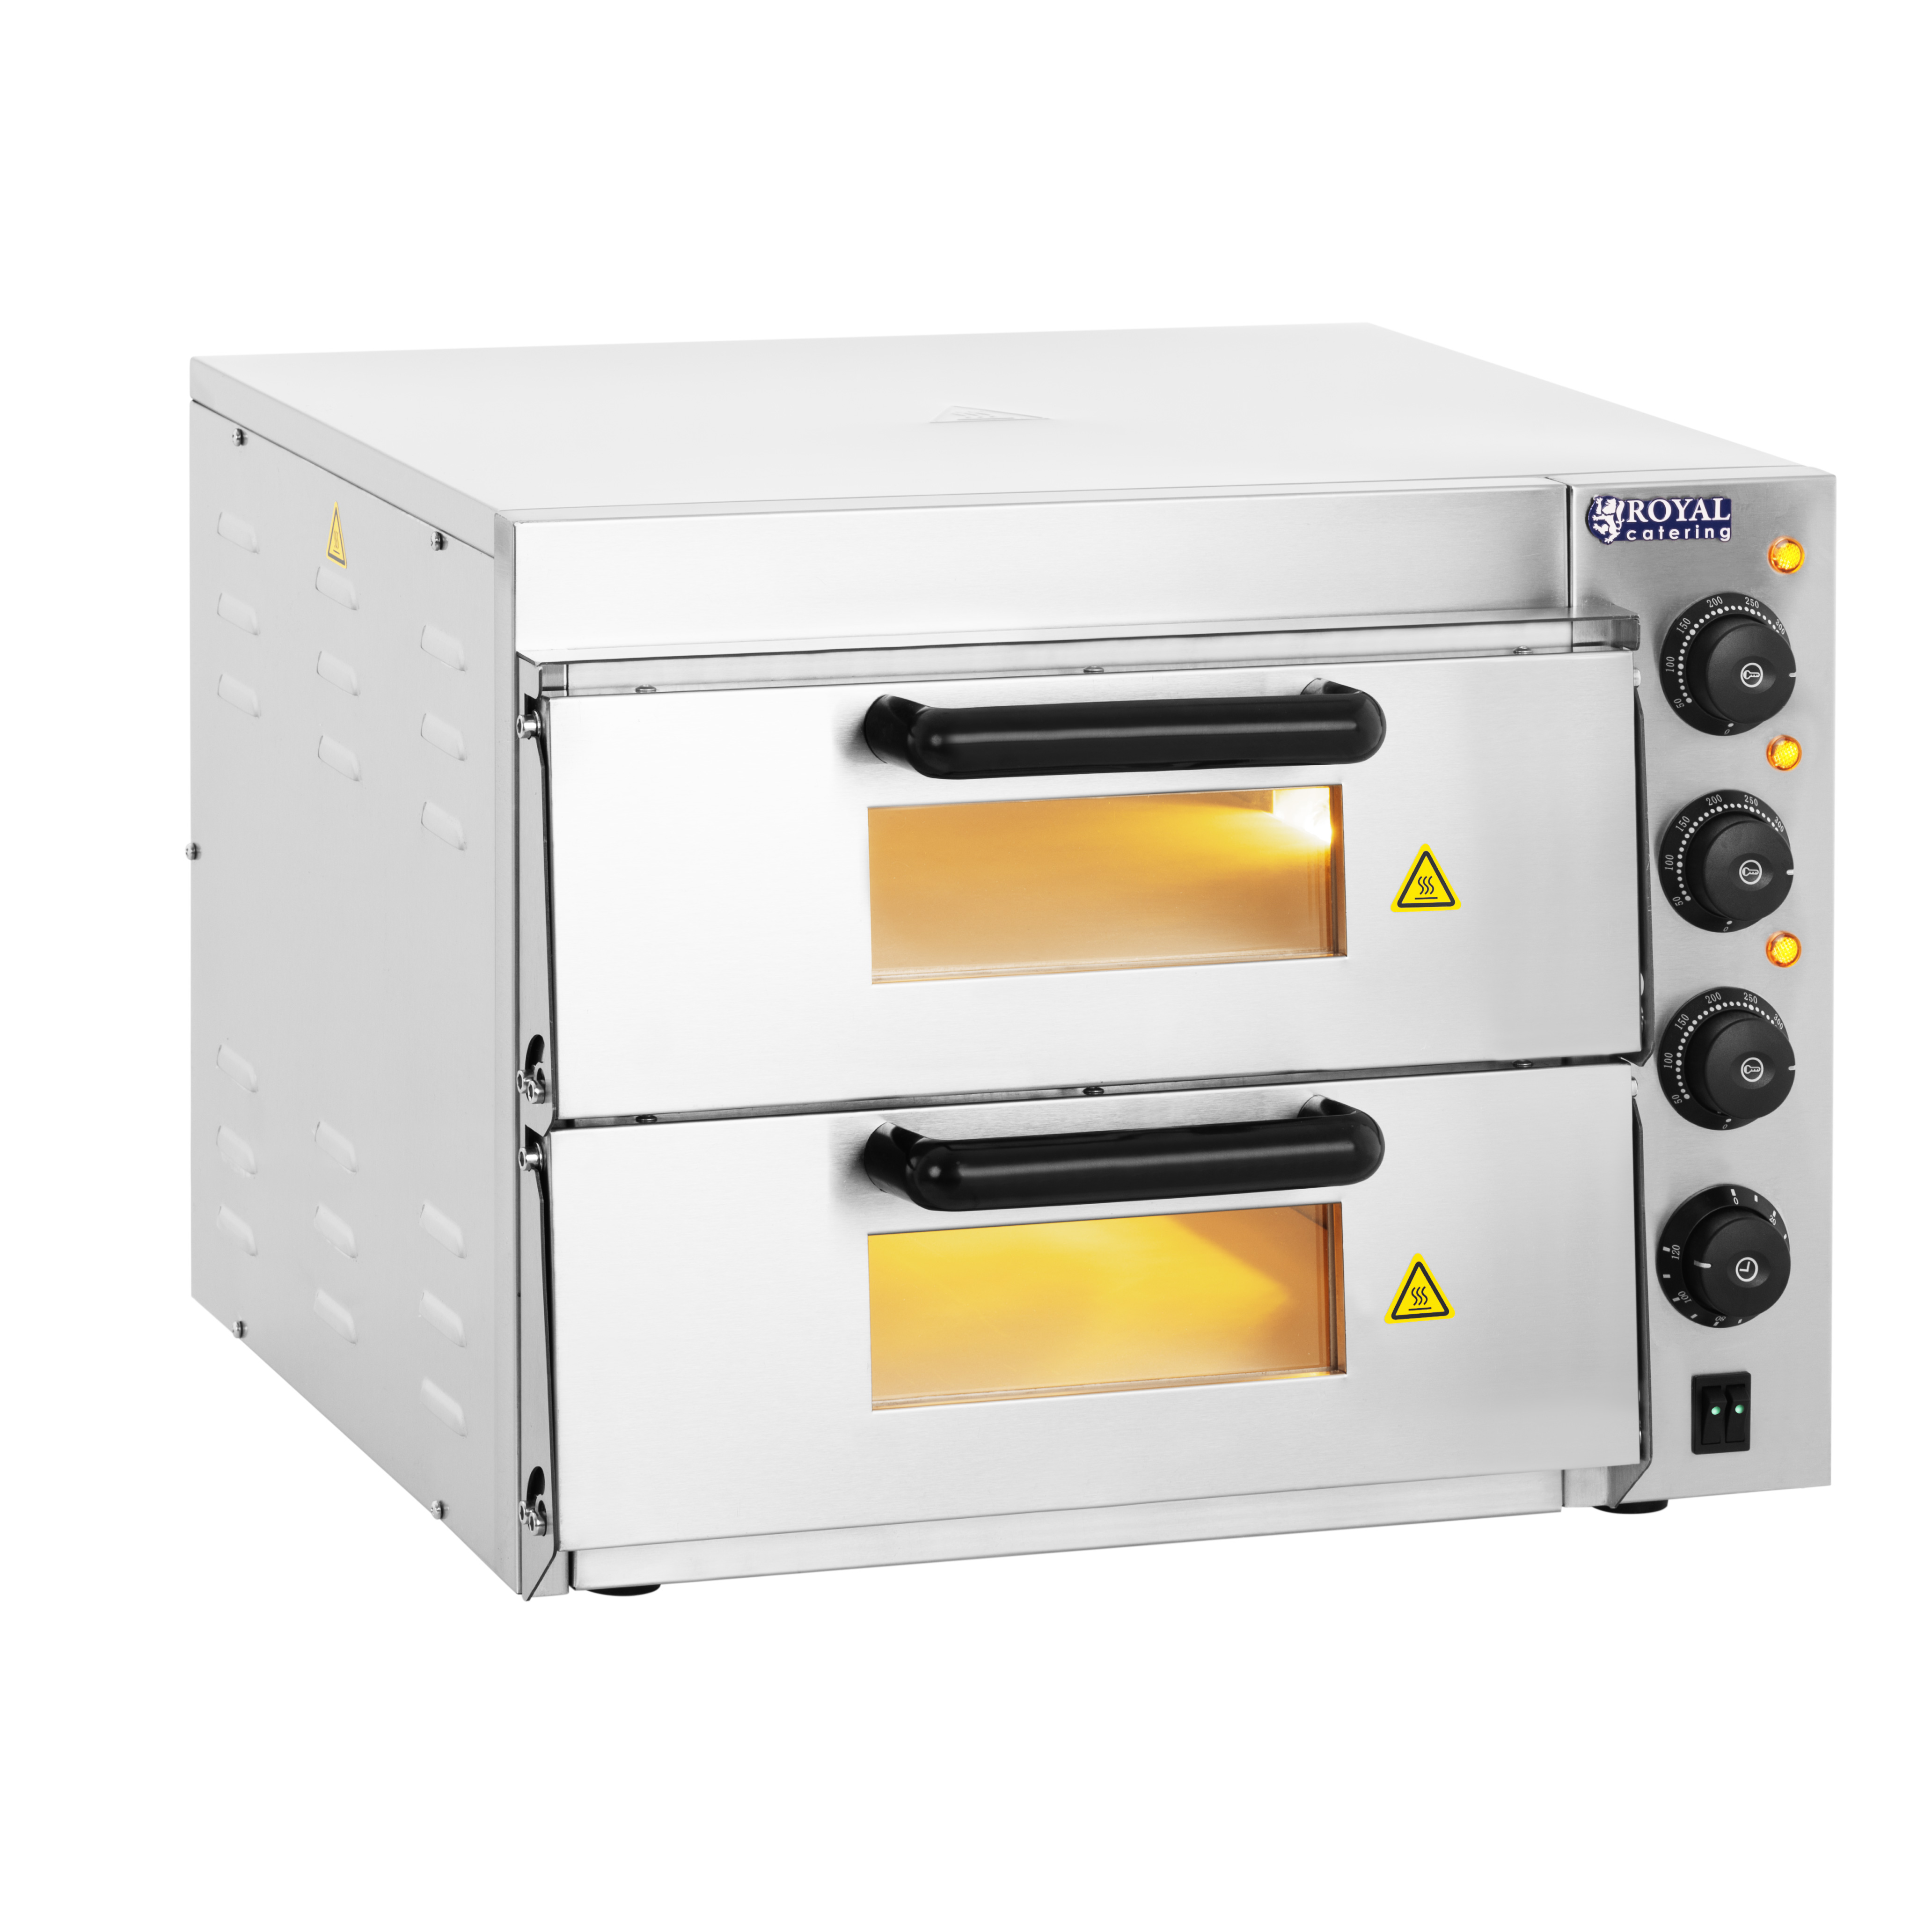 Royal Catering Pizzaofen - 2 Kammern - Schamotteboden RCPO-3000-2PS-1